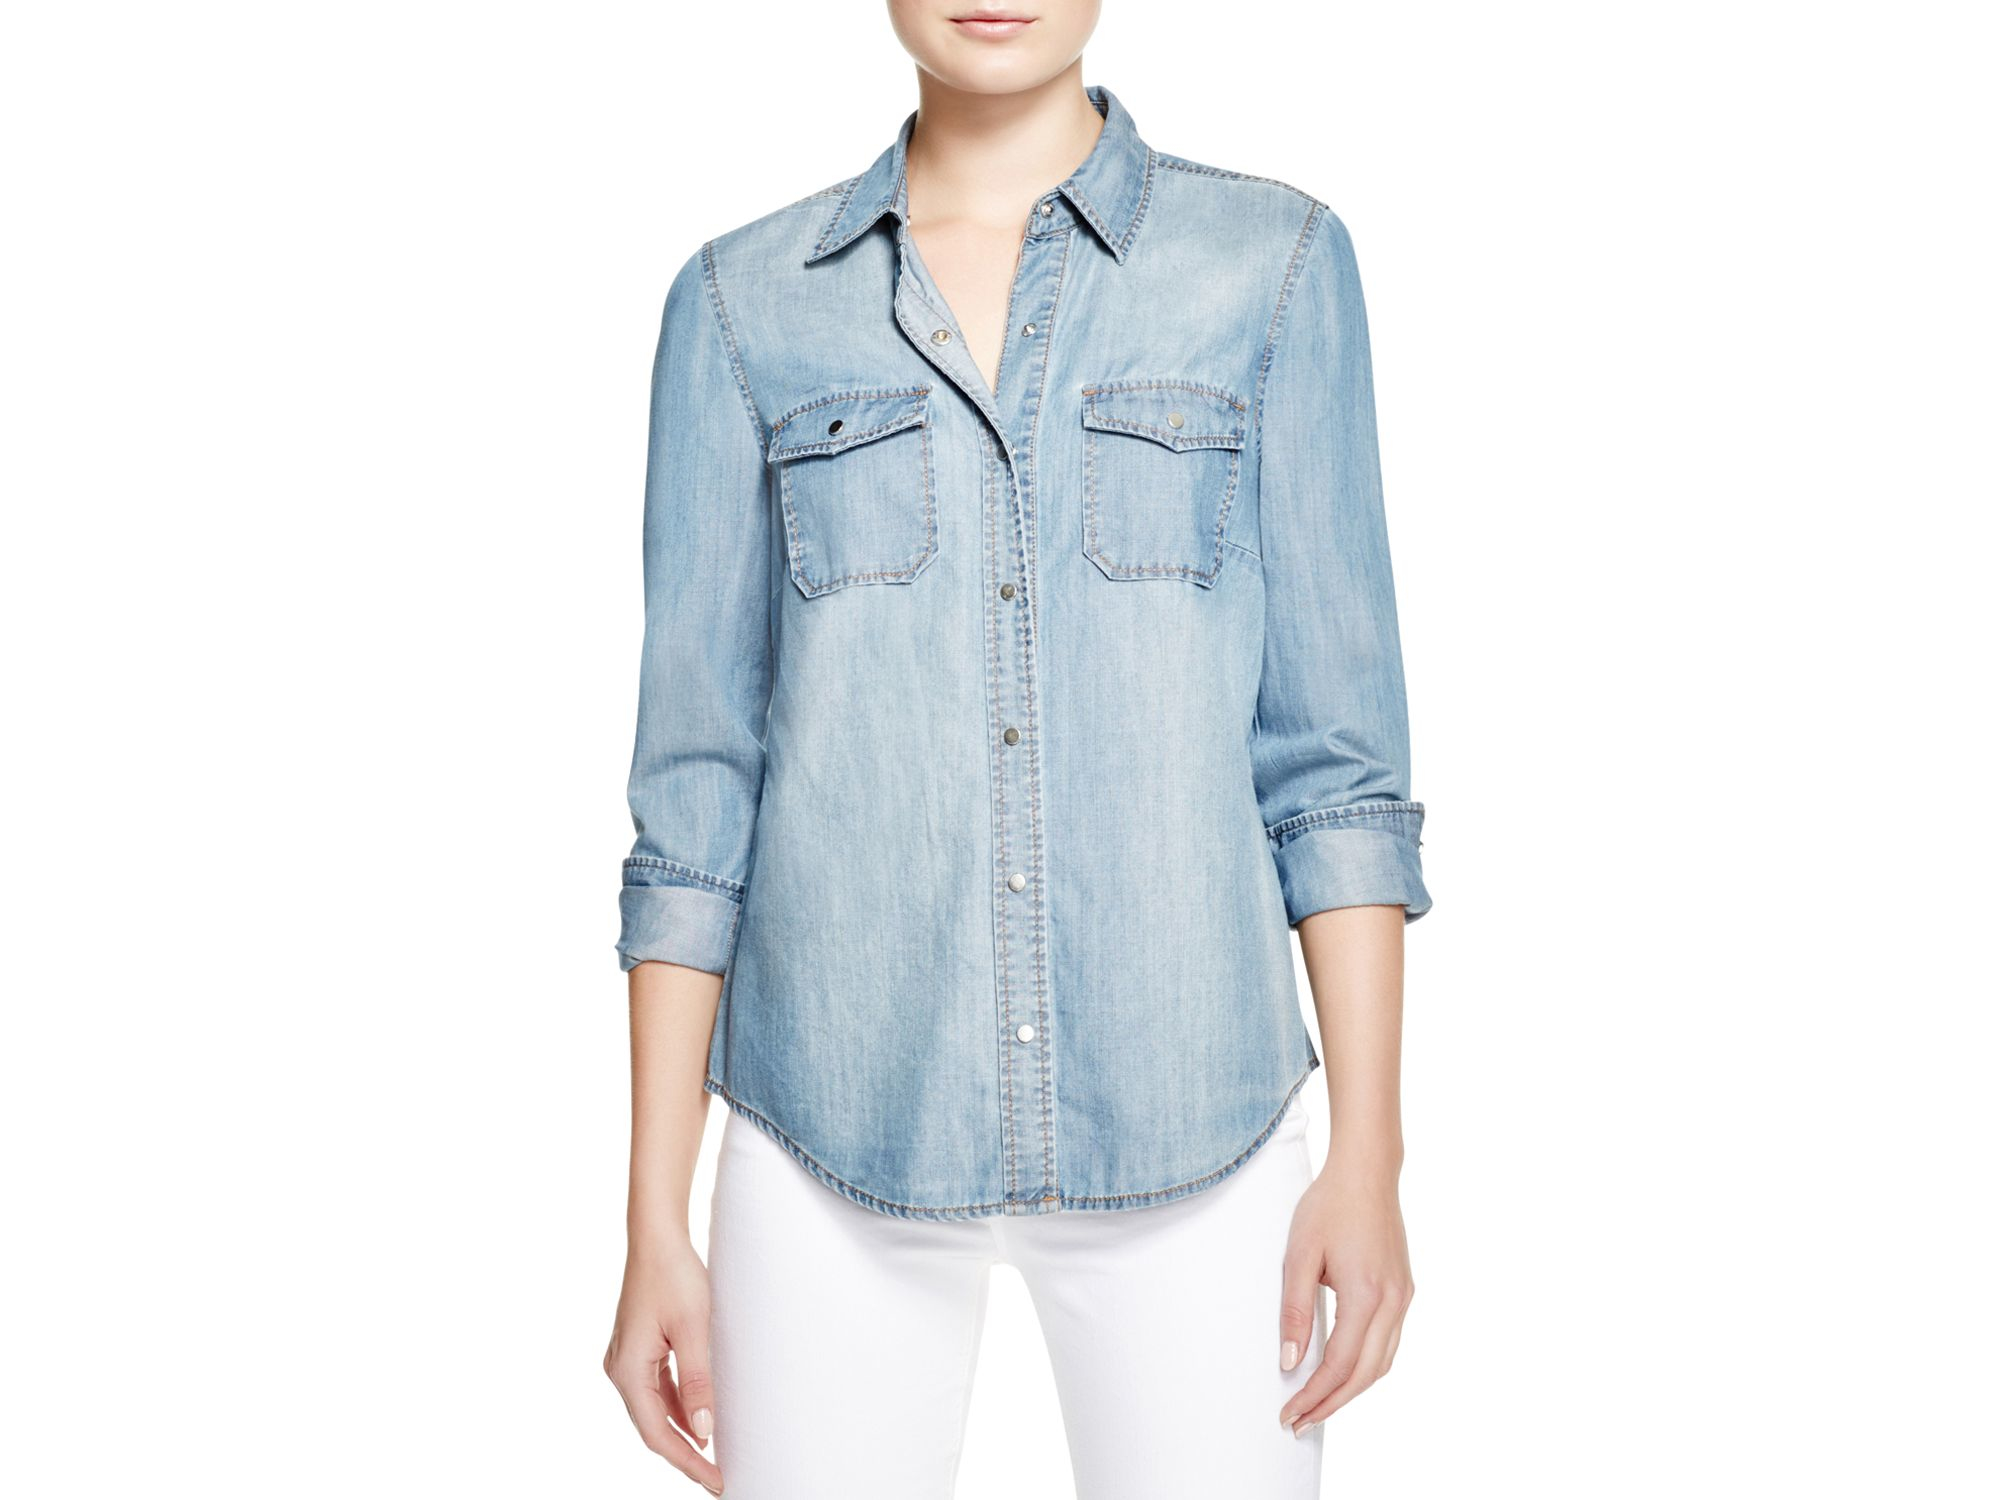 Lyst - Bardot Fitted Denim Shirt in Blue